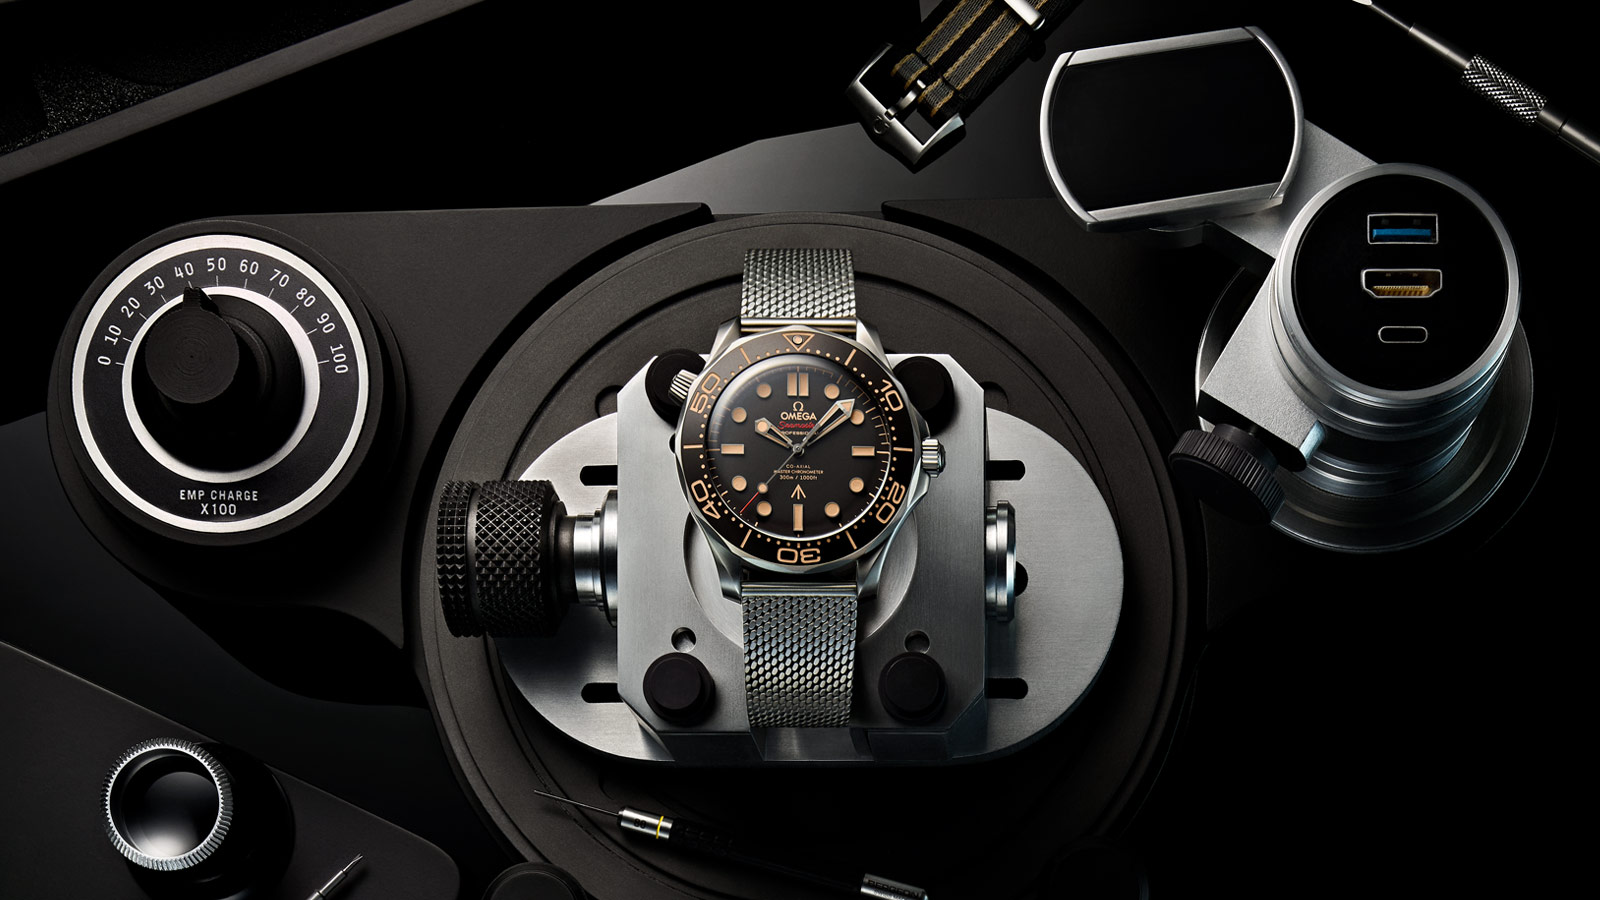 Seamaster Diver 300 M Diver 300M Omega Co‑Axial Master Chronometer 42 mm - 210.90.42.20.01.001 - View 1